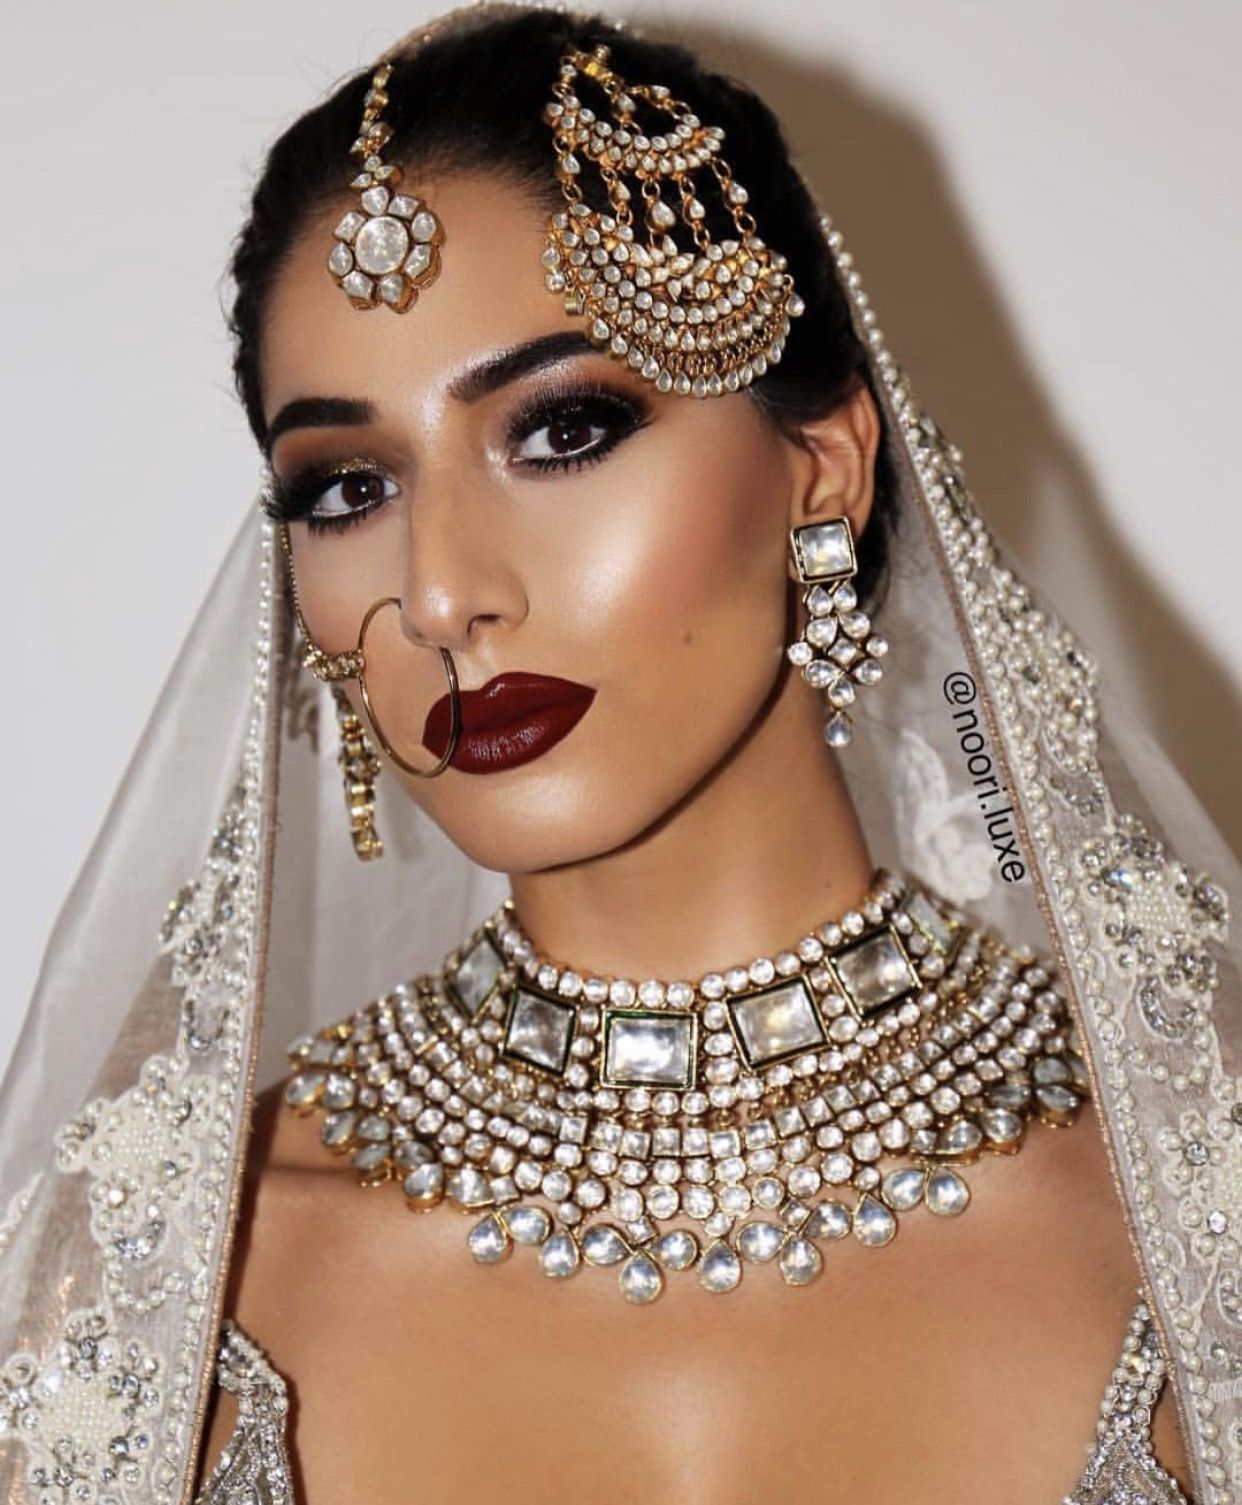 She Looks Like A Wax Model But The Jewelry Is Magnificent